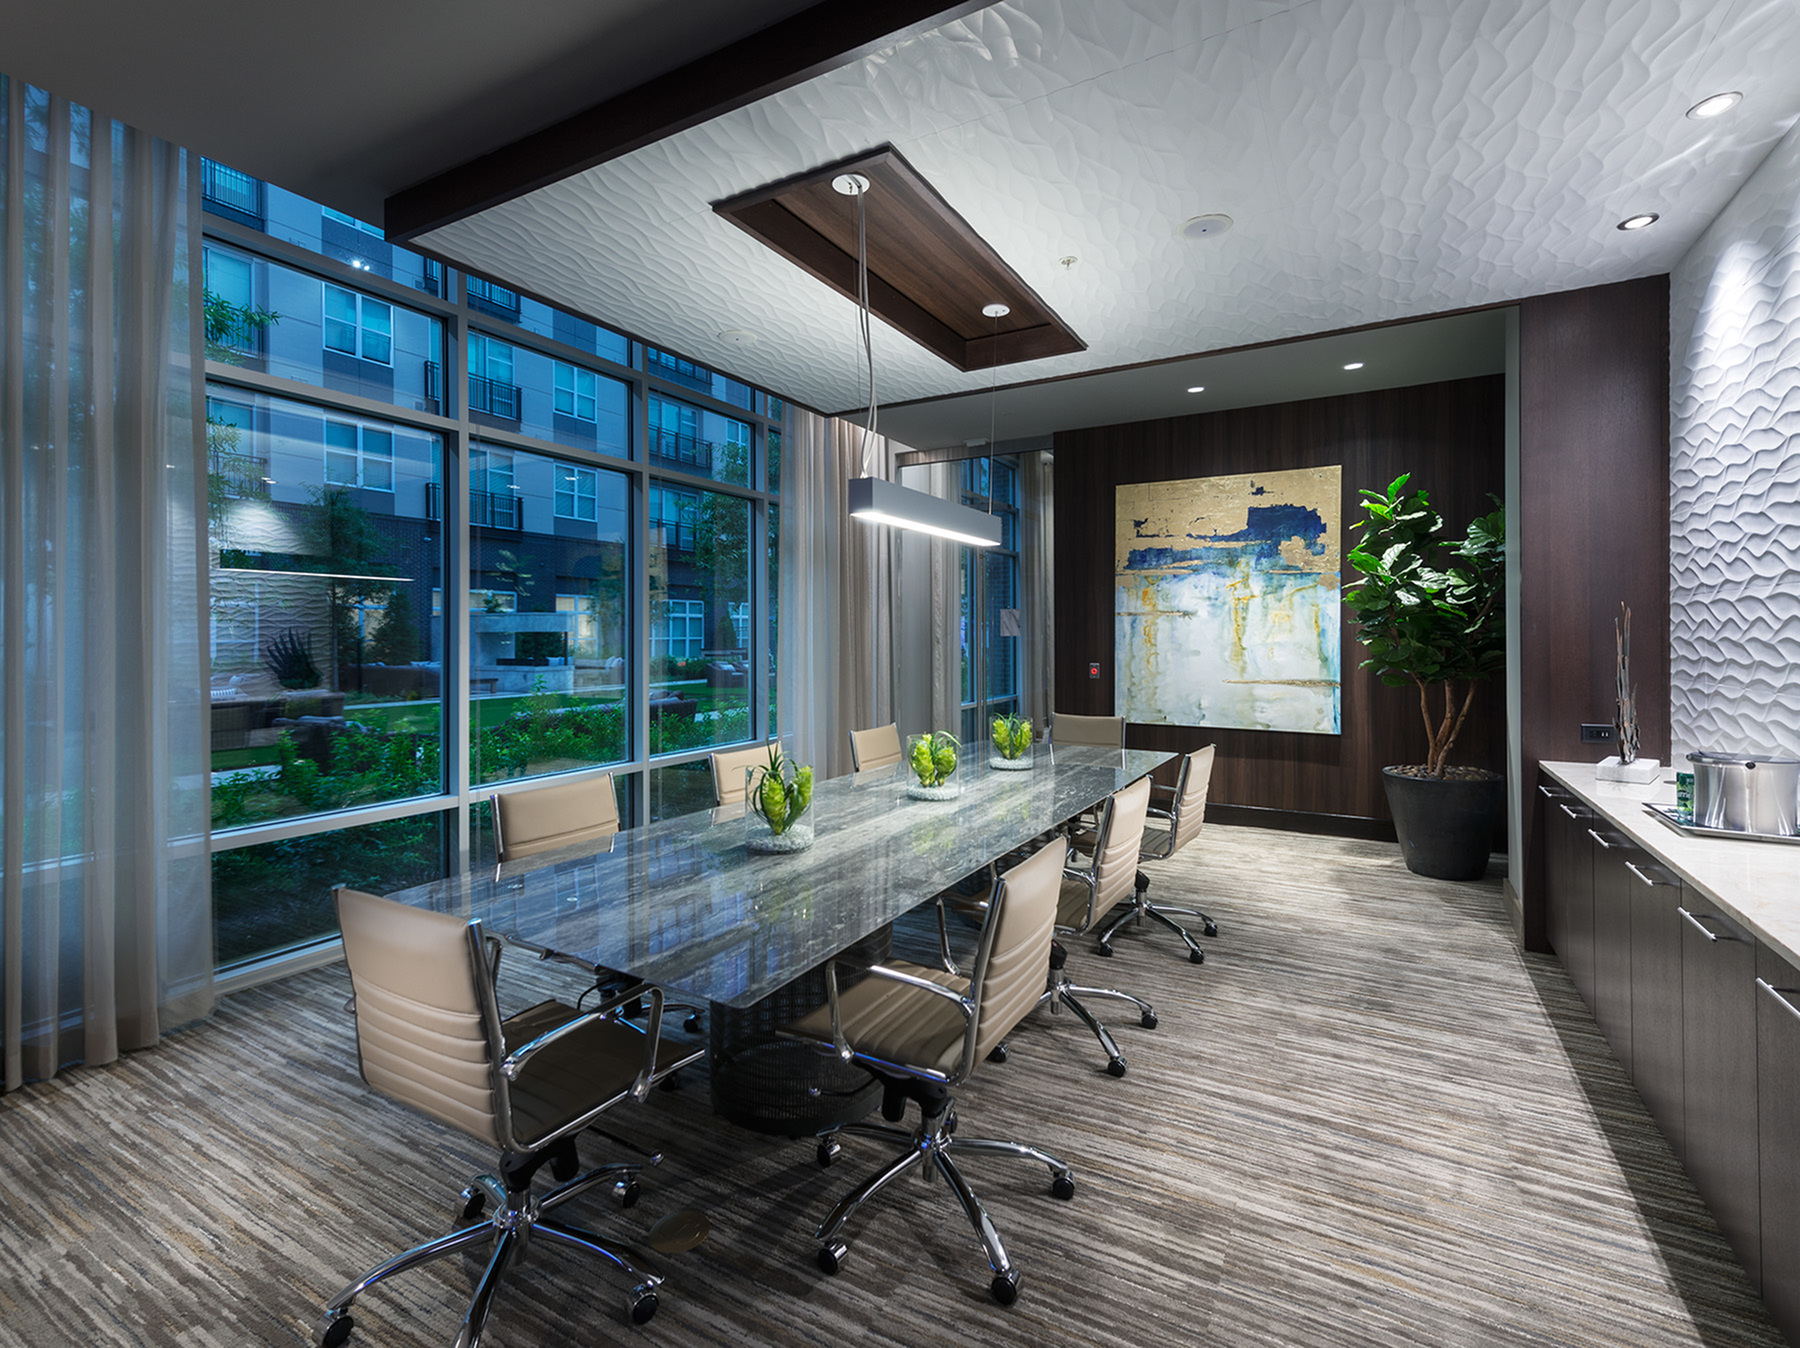 Executive Conference Rooms and Separate Meeting Spaces at The Driscoll at River Oaks